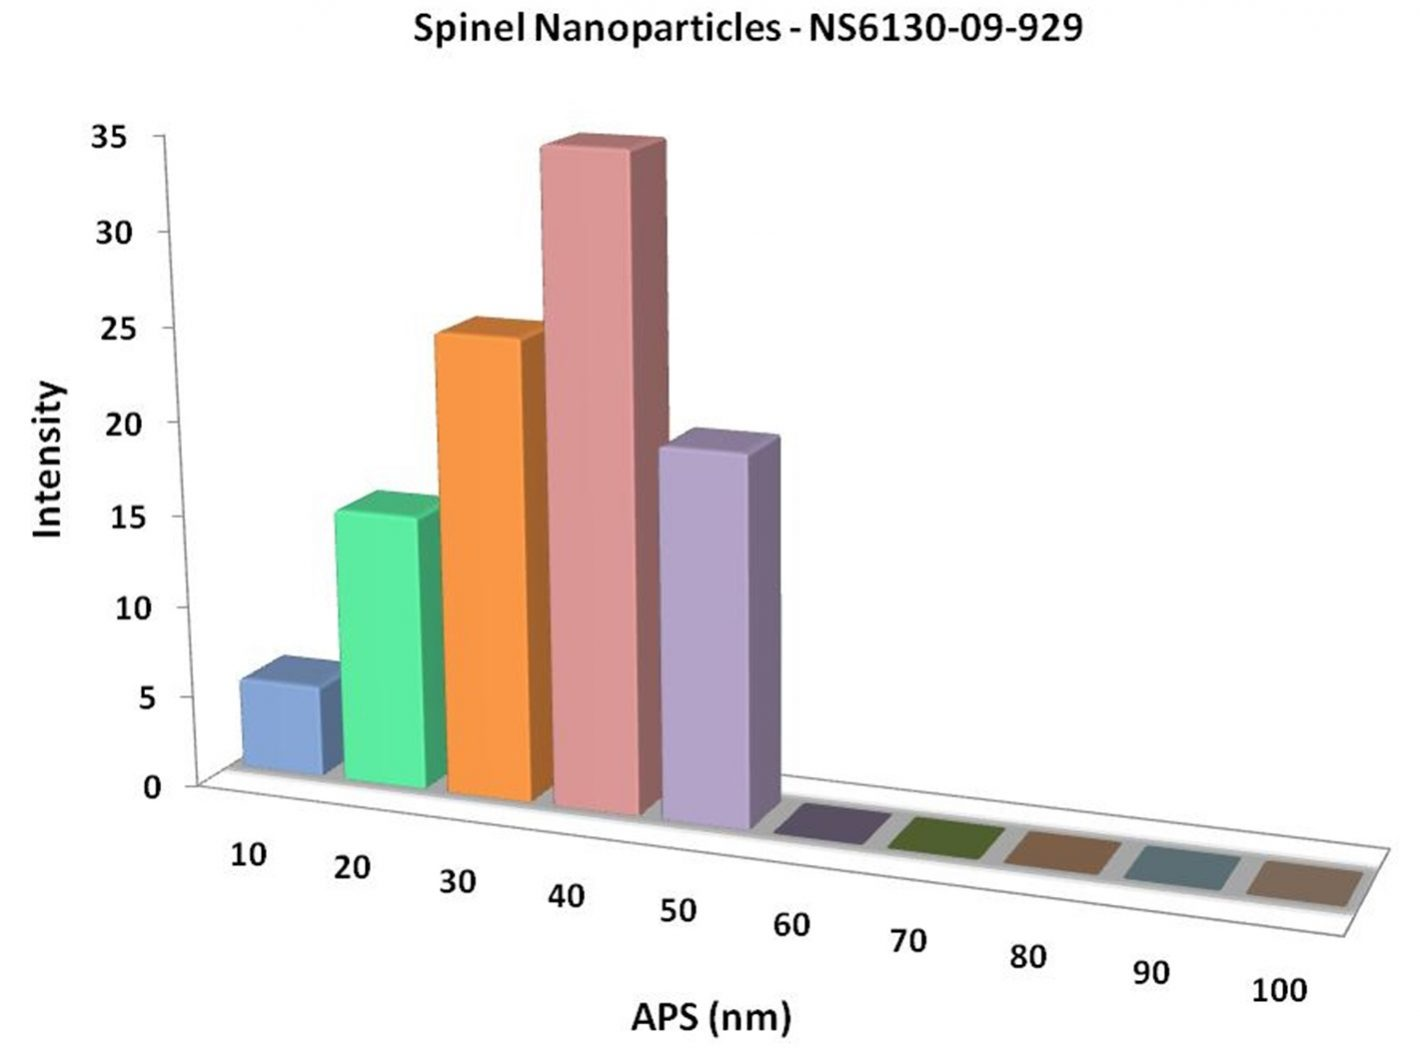 Spinel Nanoparticles